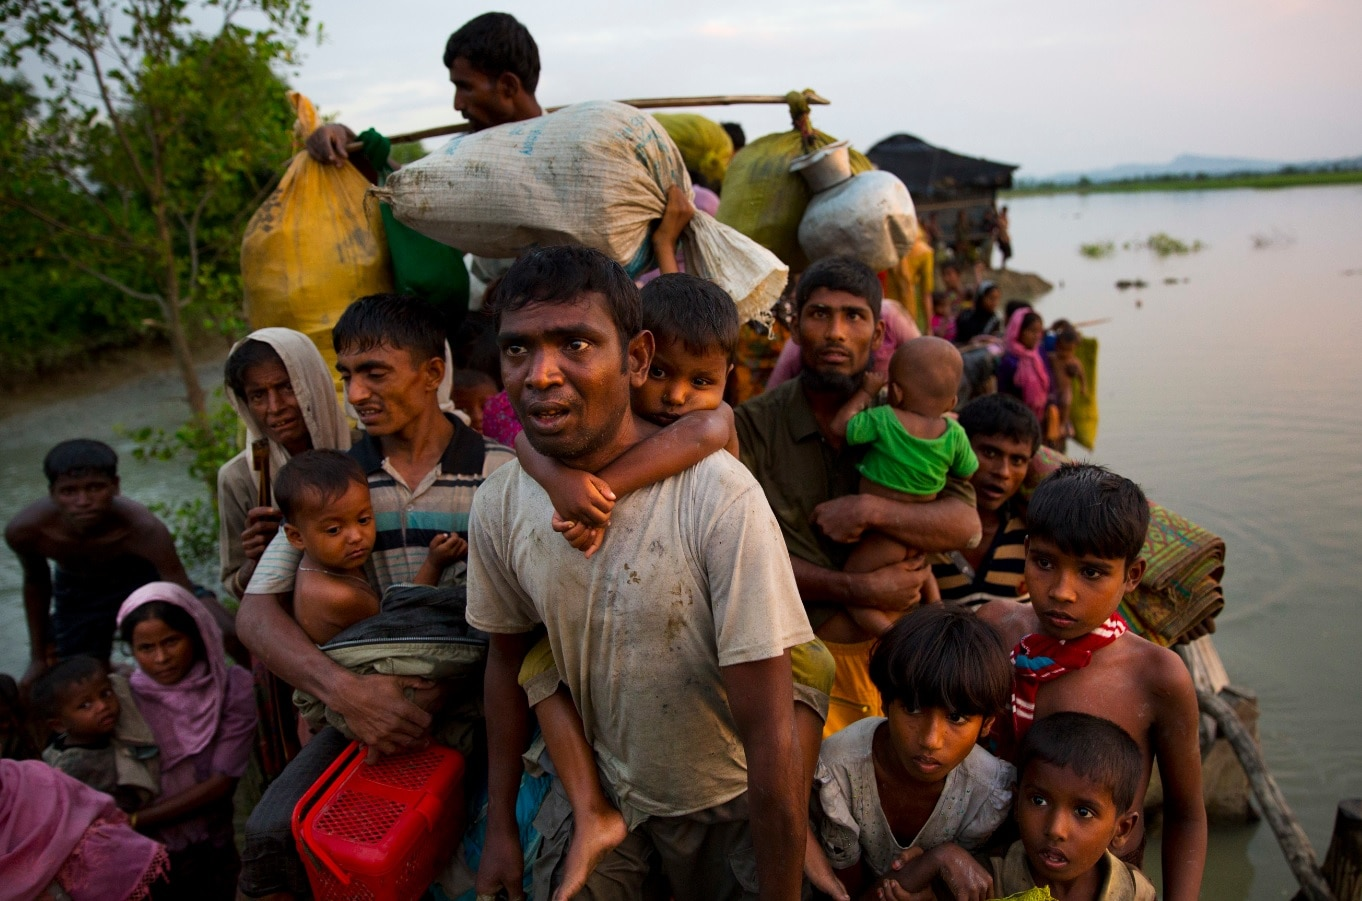 Rohingya Muslims carry their young children and belongings after crossing the border from Myanmar into Bangladesh. Some of them will be heading back.